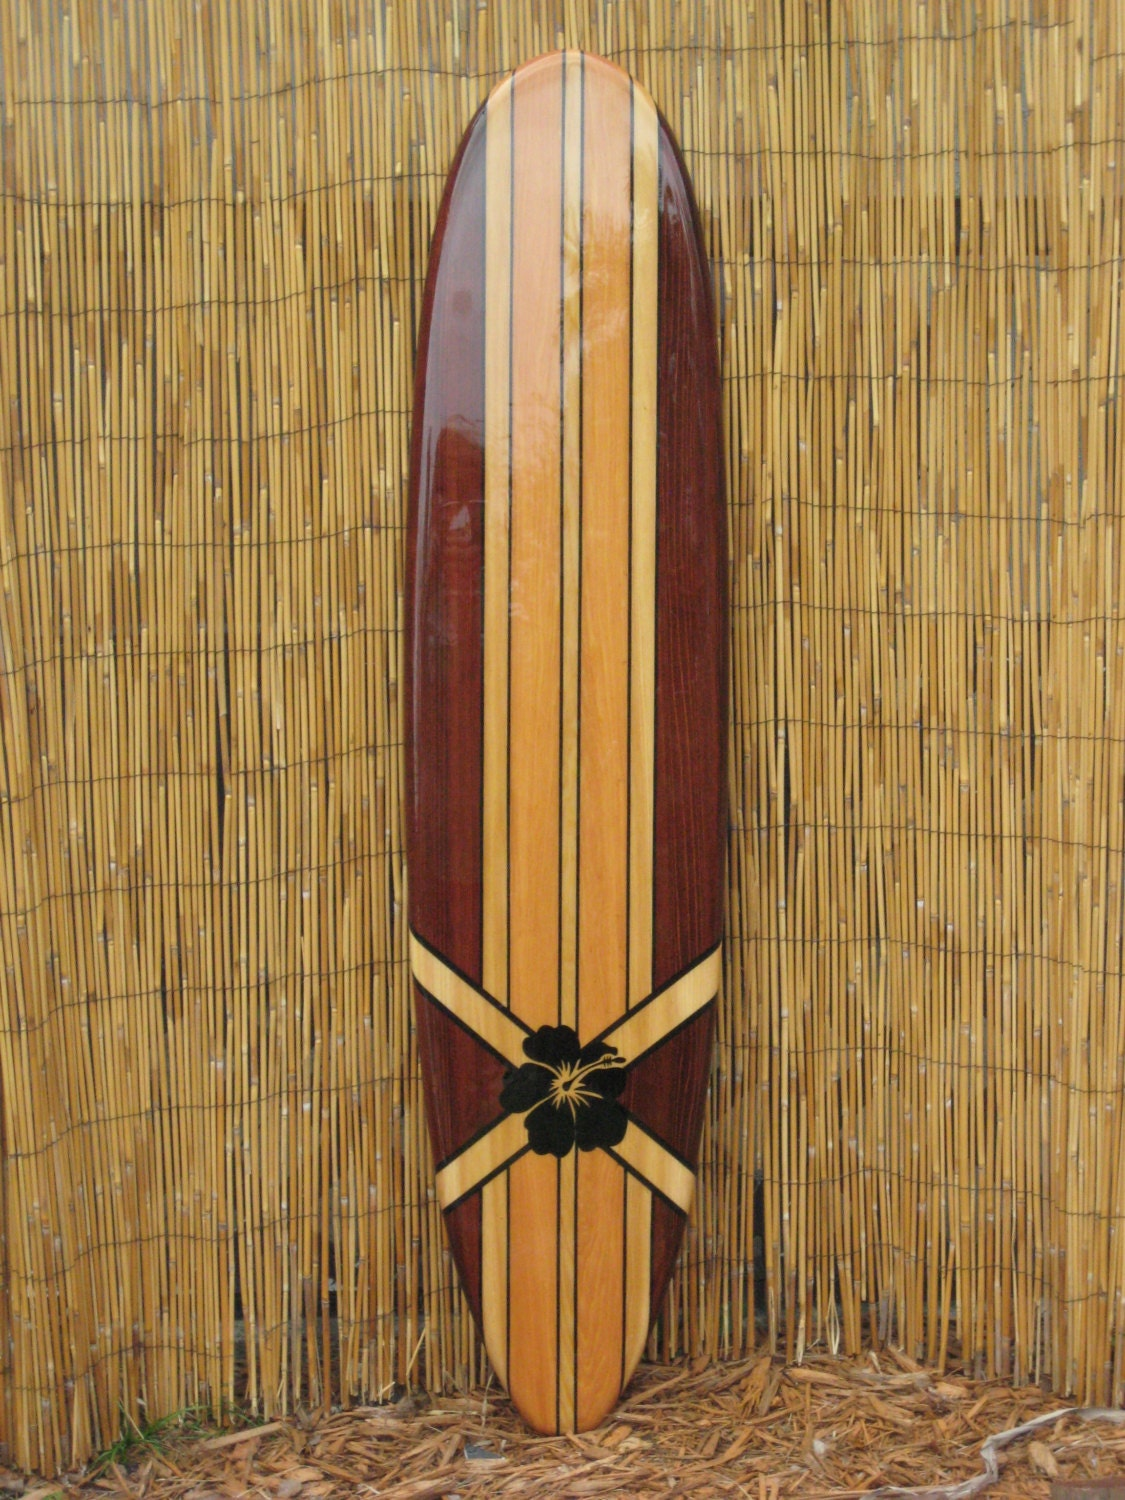 Wooden Decorative Surfboard Wall Art Wall Hanging or Beach